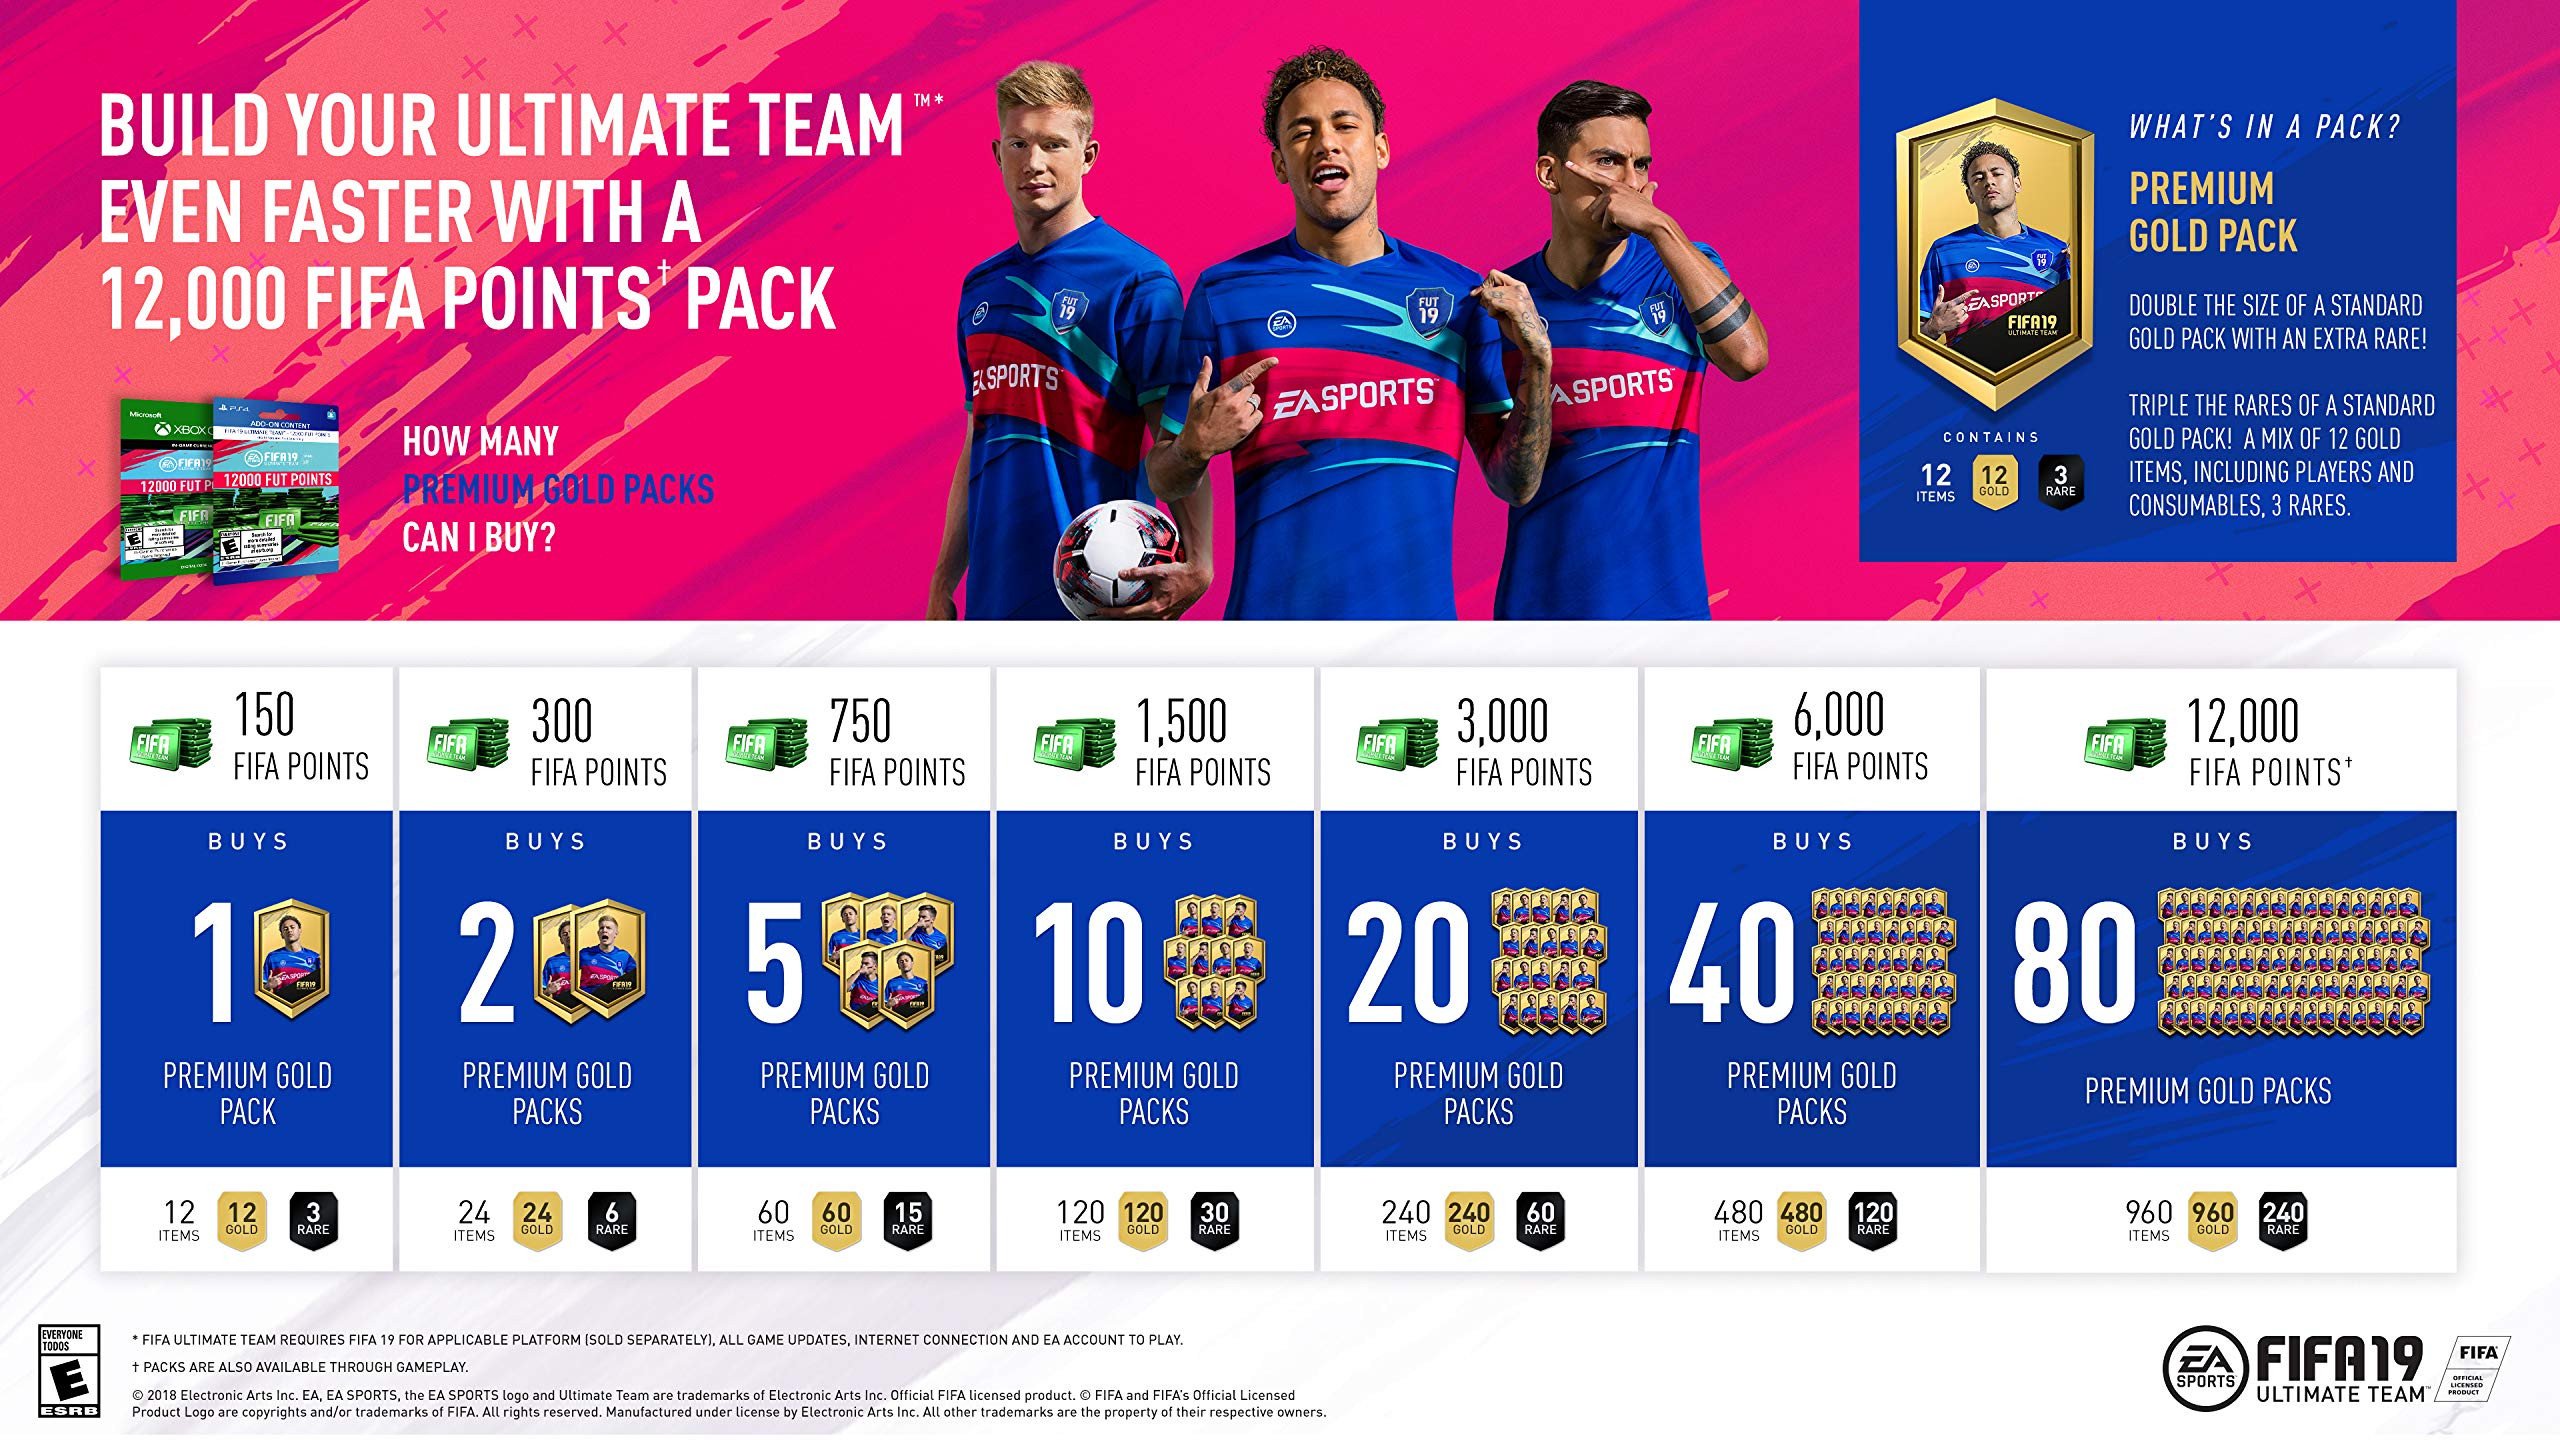 FIFA 19: ULTIMATE TEAM FIFA POINTS 12000 - Xbox One [Digital Code] by Electronic Arts (Image #3)